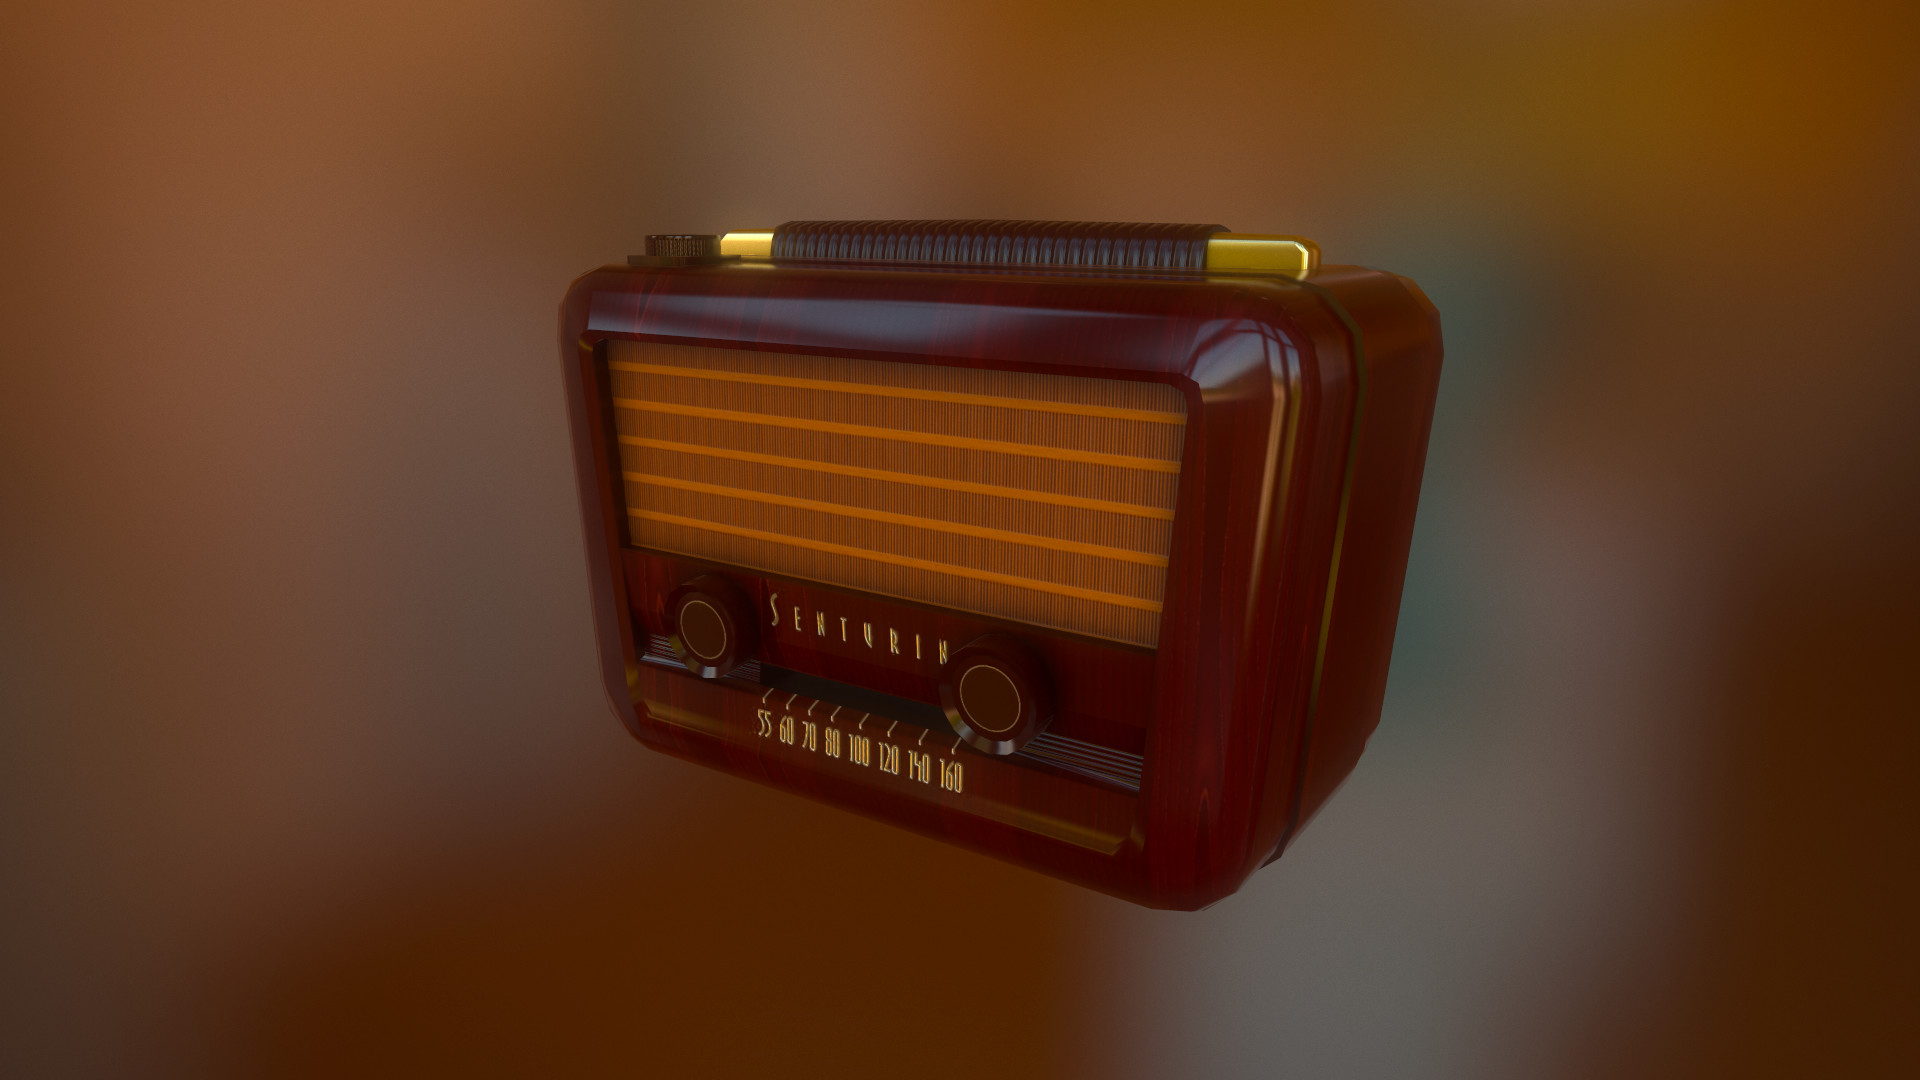 Old Radio that I textured using Substance Painter